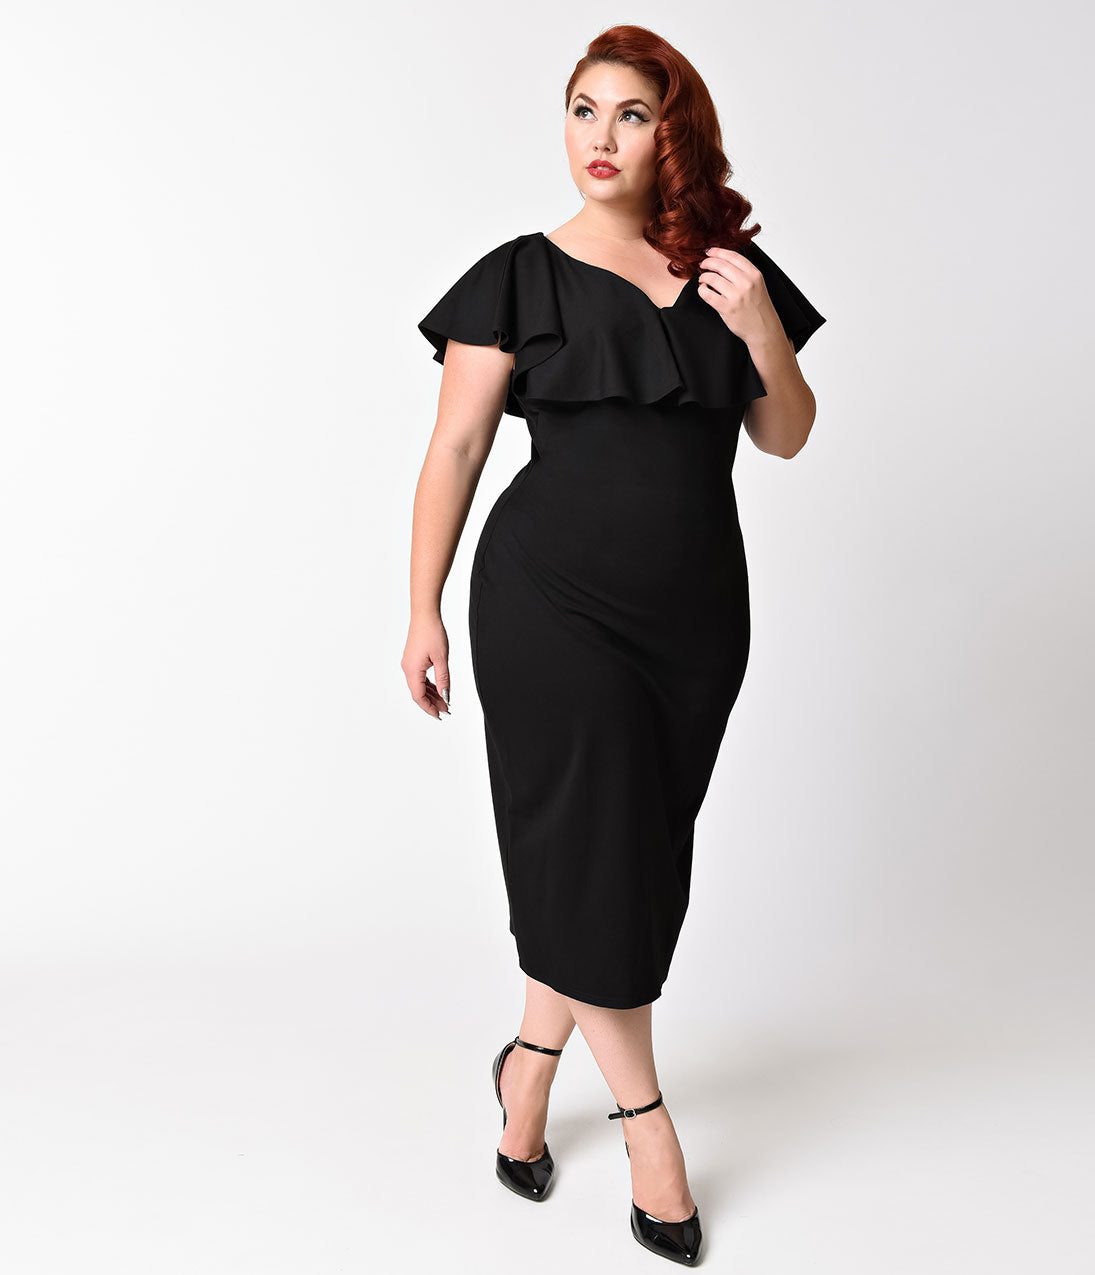 Vintage 50s Dresses: 8 Classic Retro Styles Unique Vintage Plus Size Black Knit Draped Sophia Wiggle Dress $59.00 AT vintagedancer.com